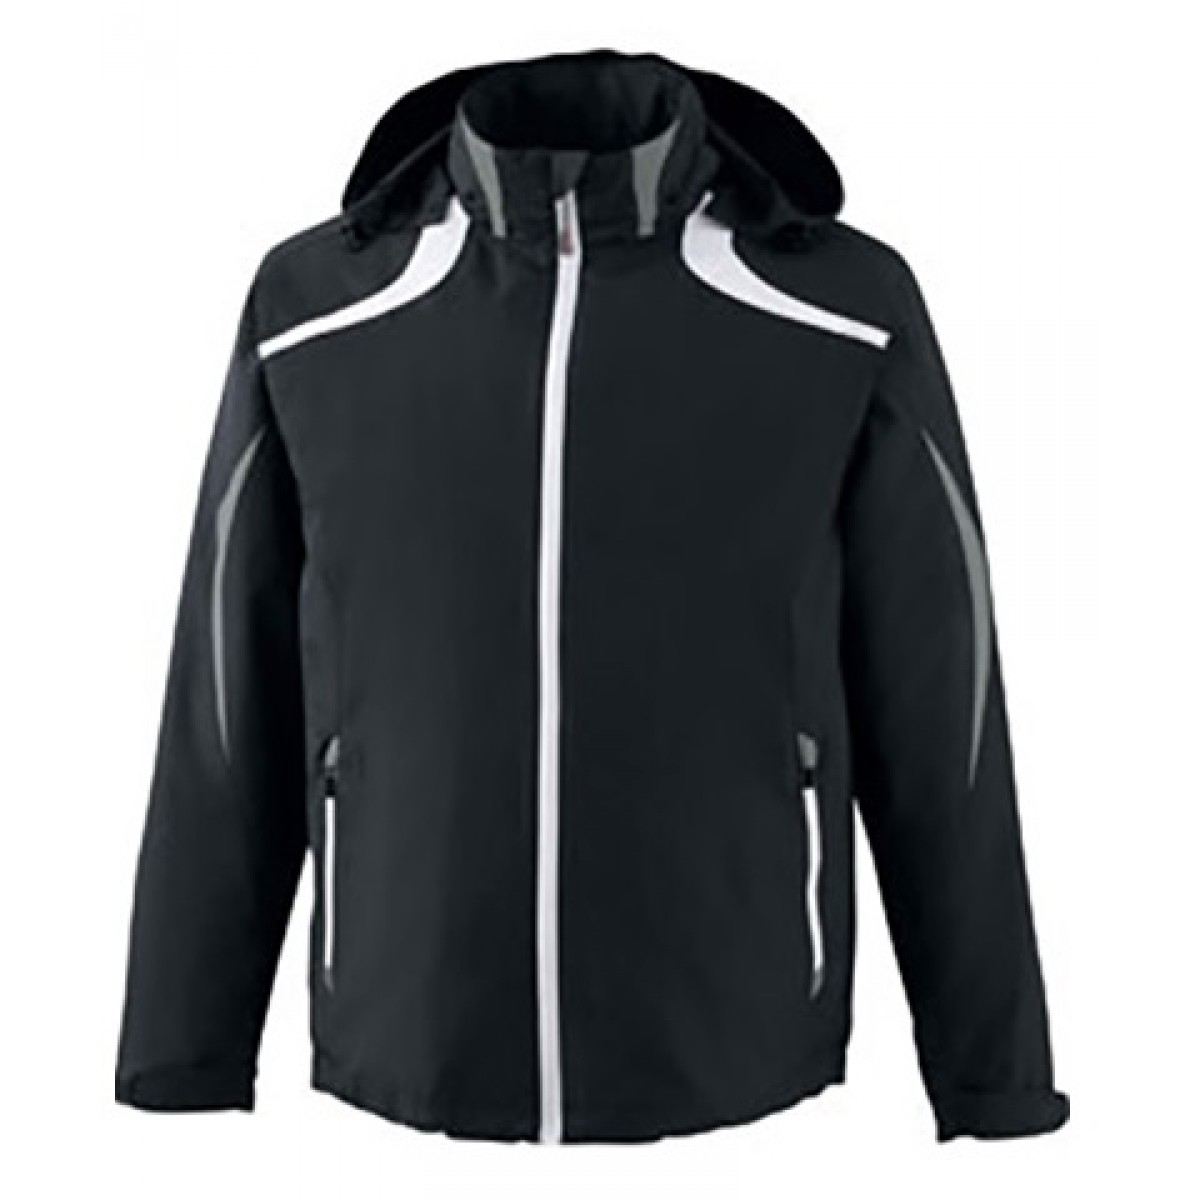 North End Men's Impact Active Lite Colorblock Jacket-Black-XL